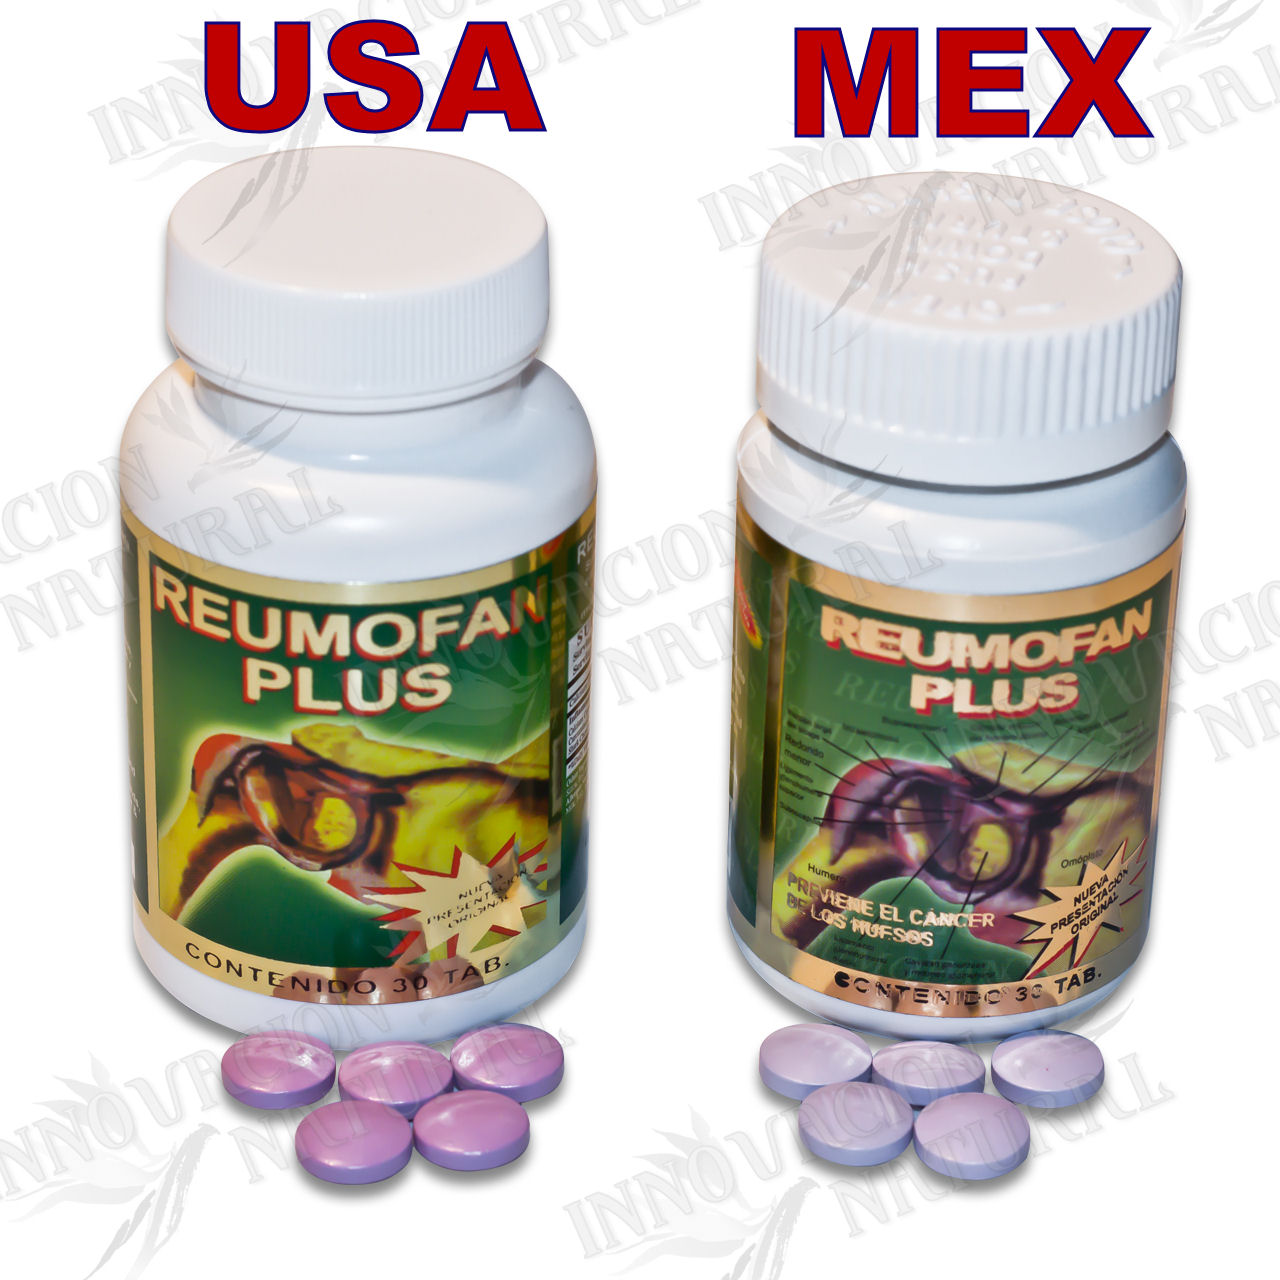 Reumofan Plus Bottles